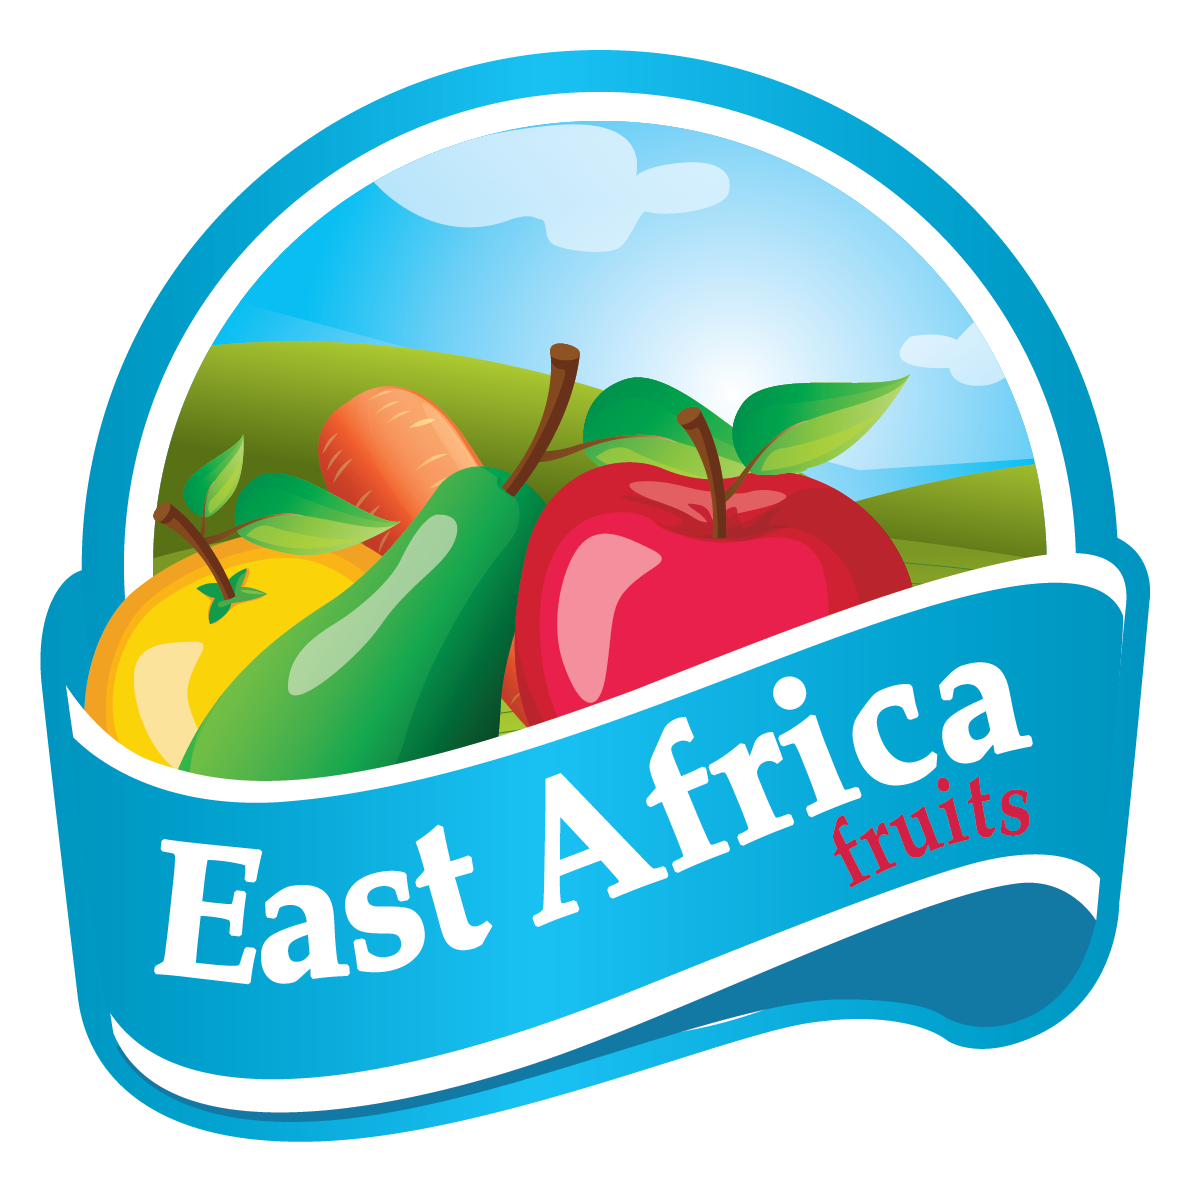 East Africa Fruits Co.